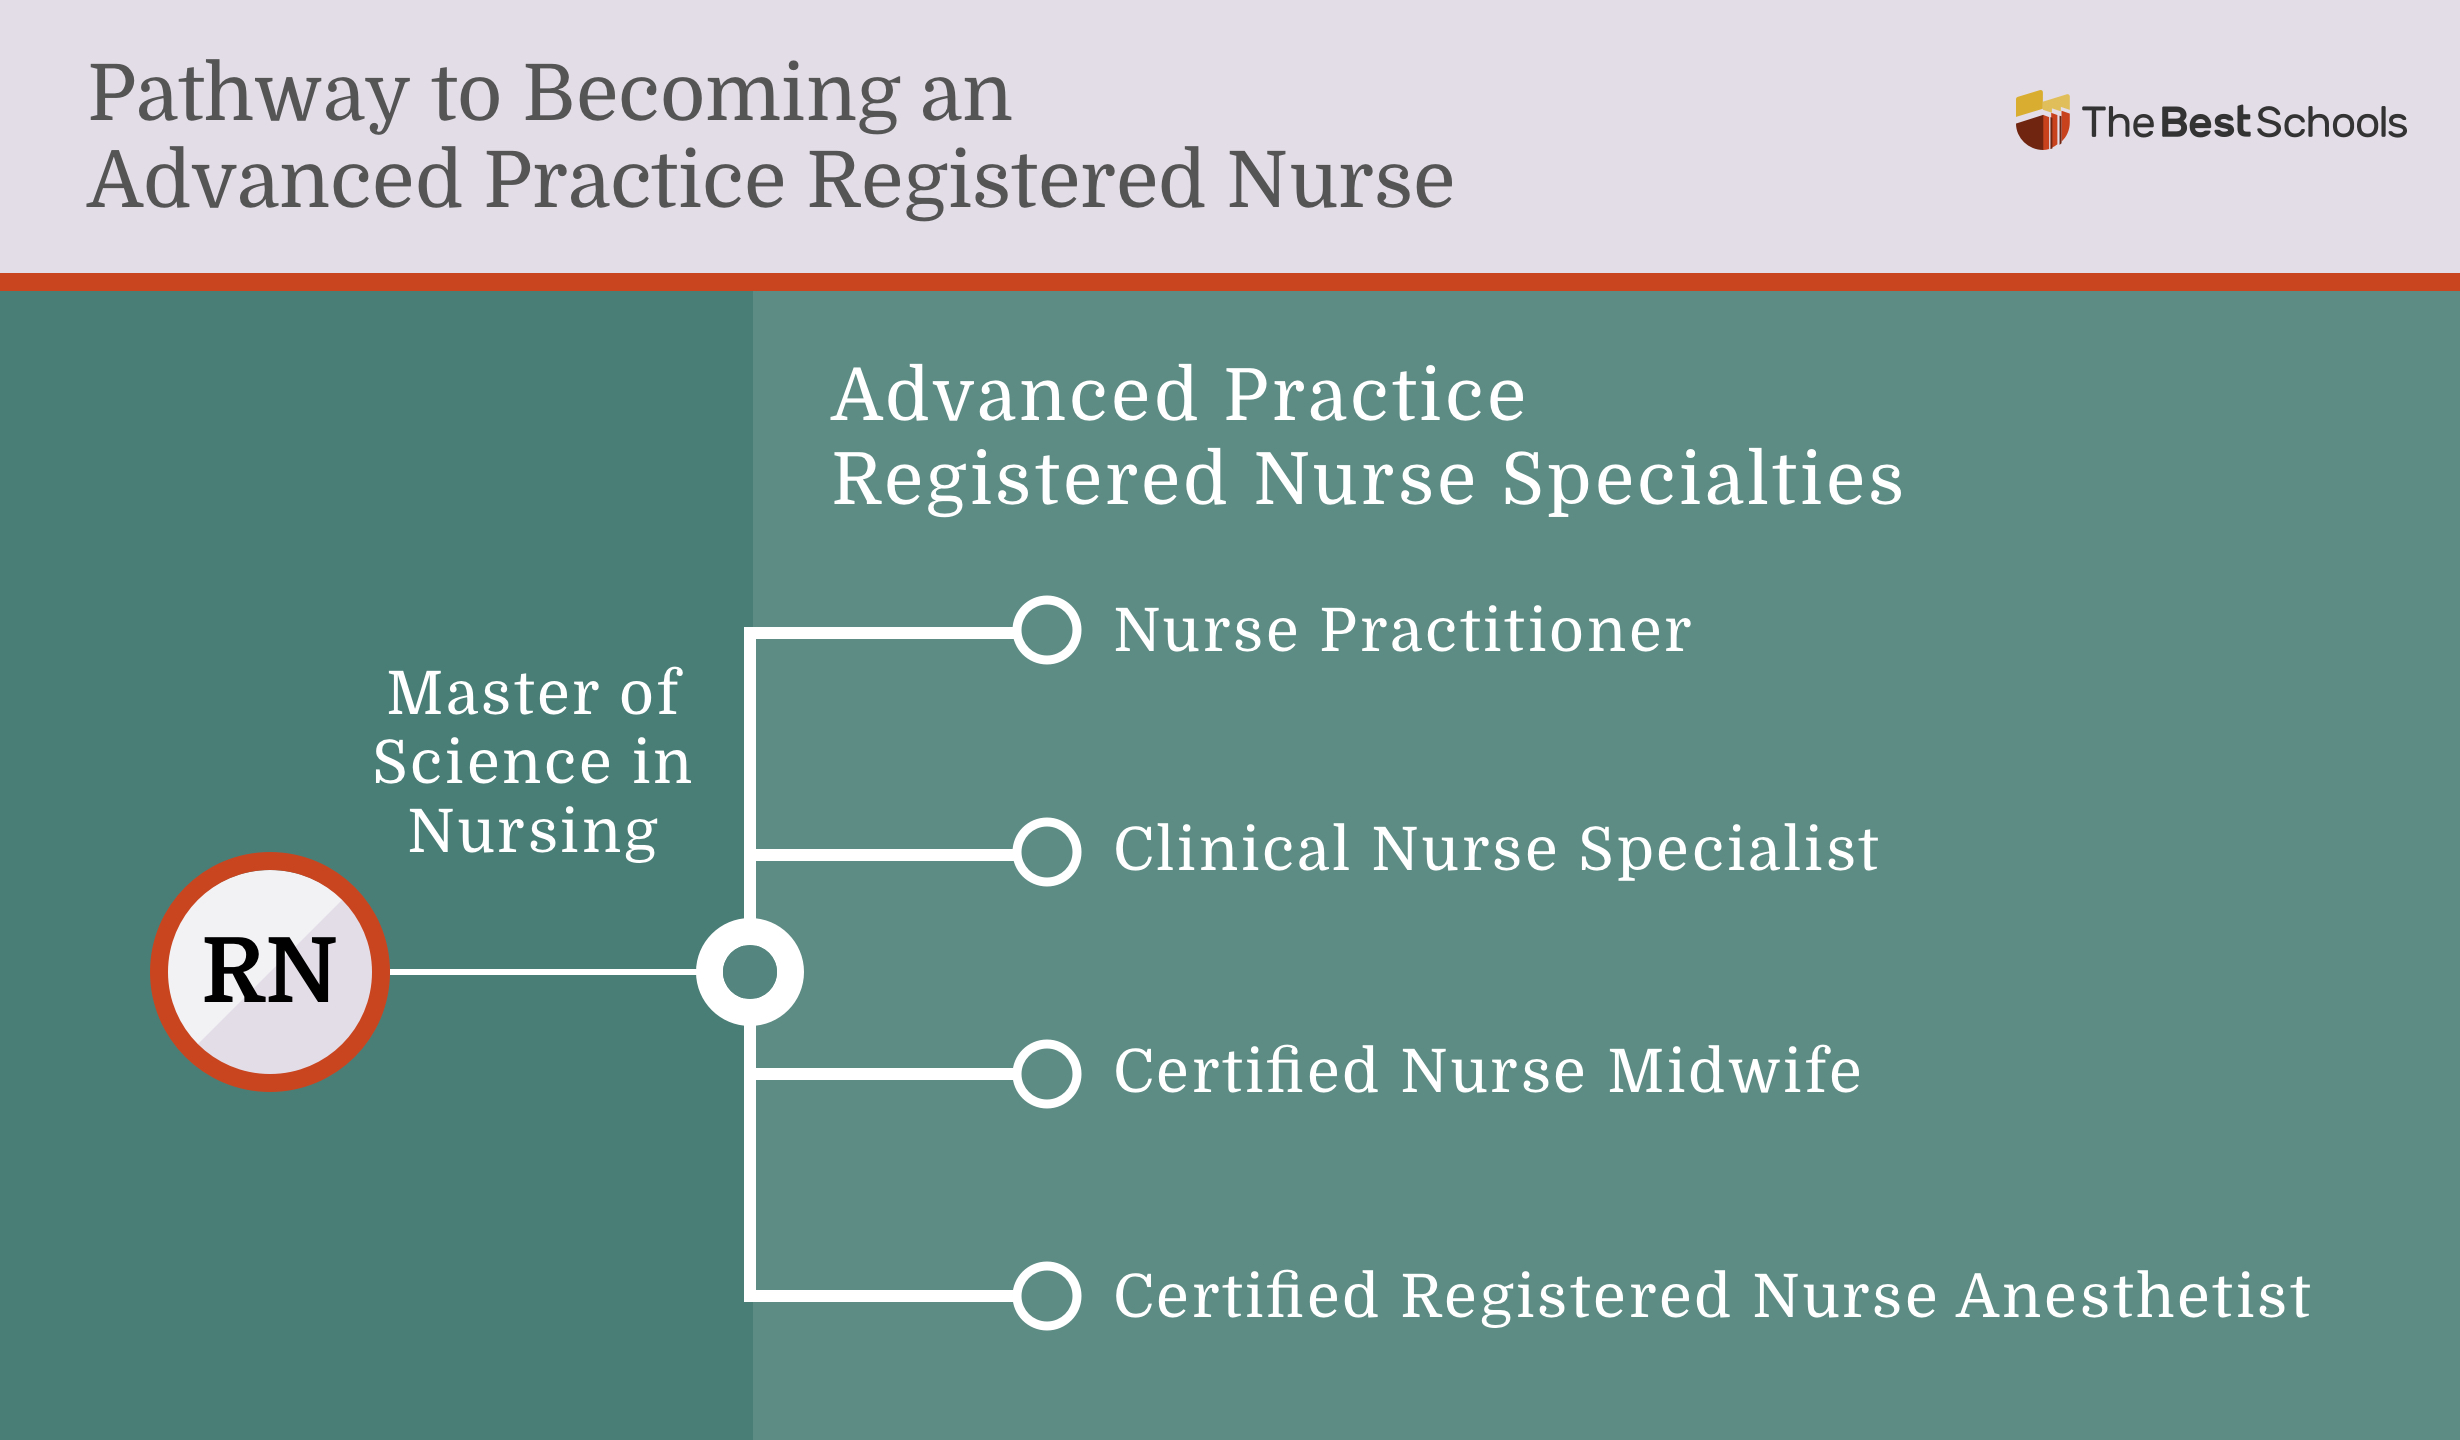 Image titled: Pathway to Becoming an Advanced Practice Registered Nurse (RN)